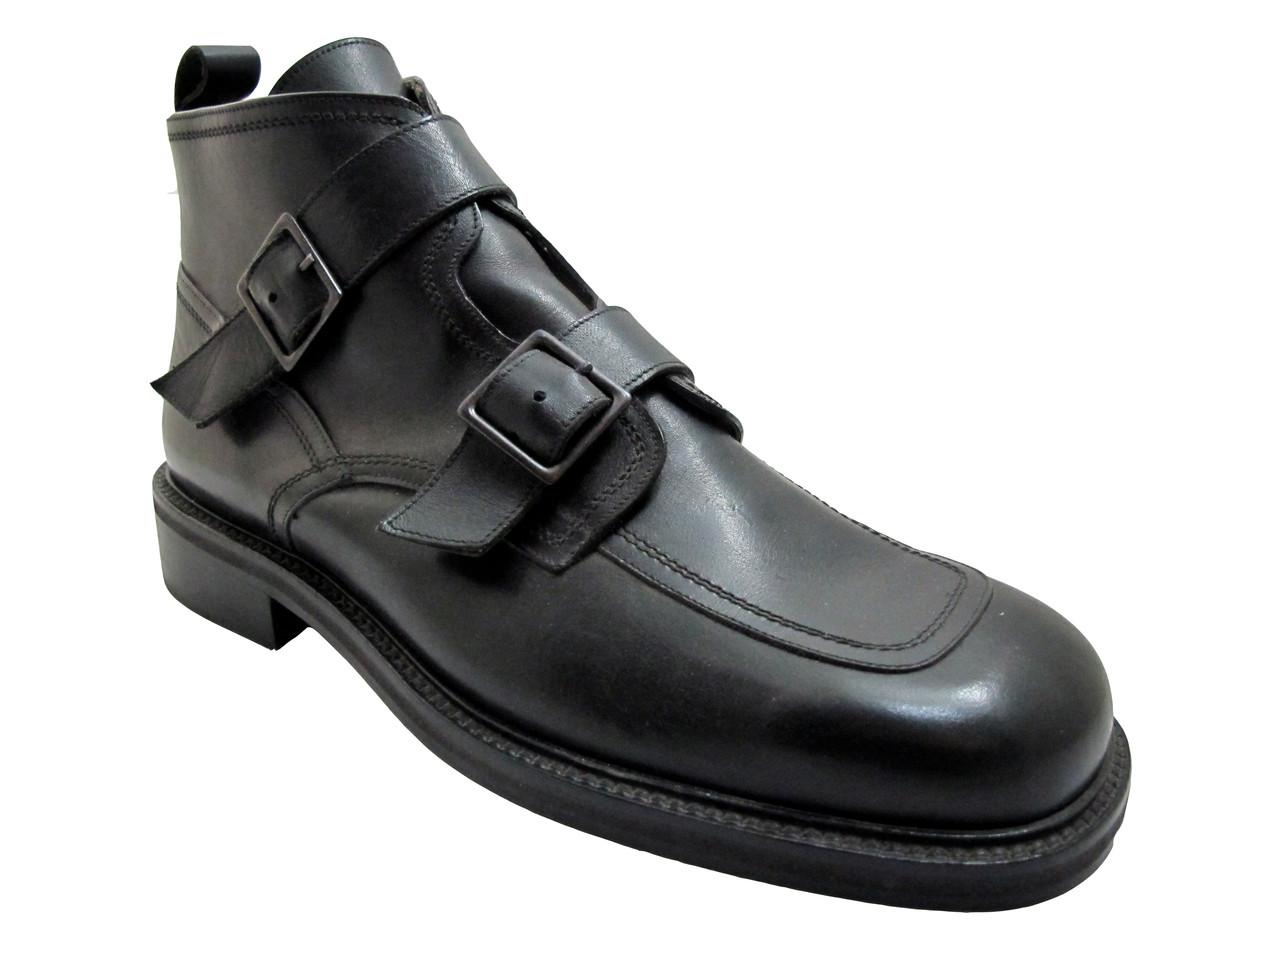 a49c50aed729a Smith 21206 Men's Italian Leather with Two straps Ankle Boot Black